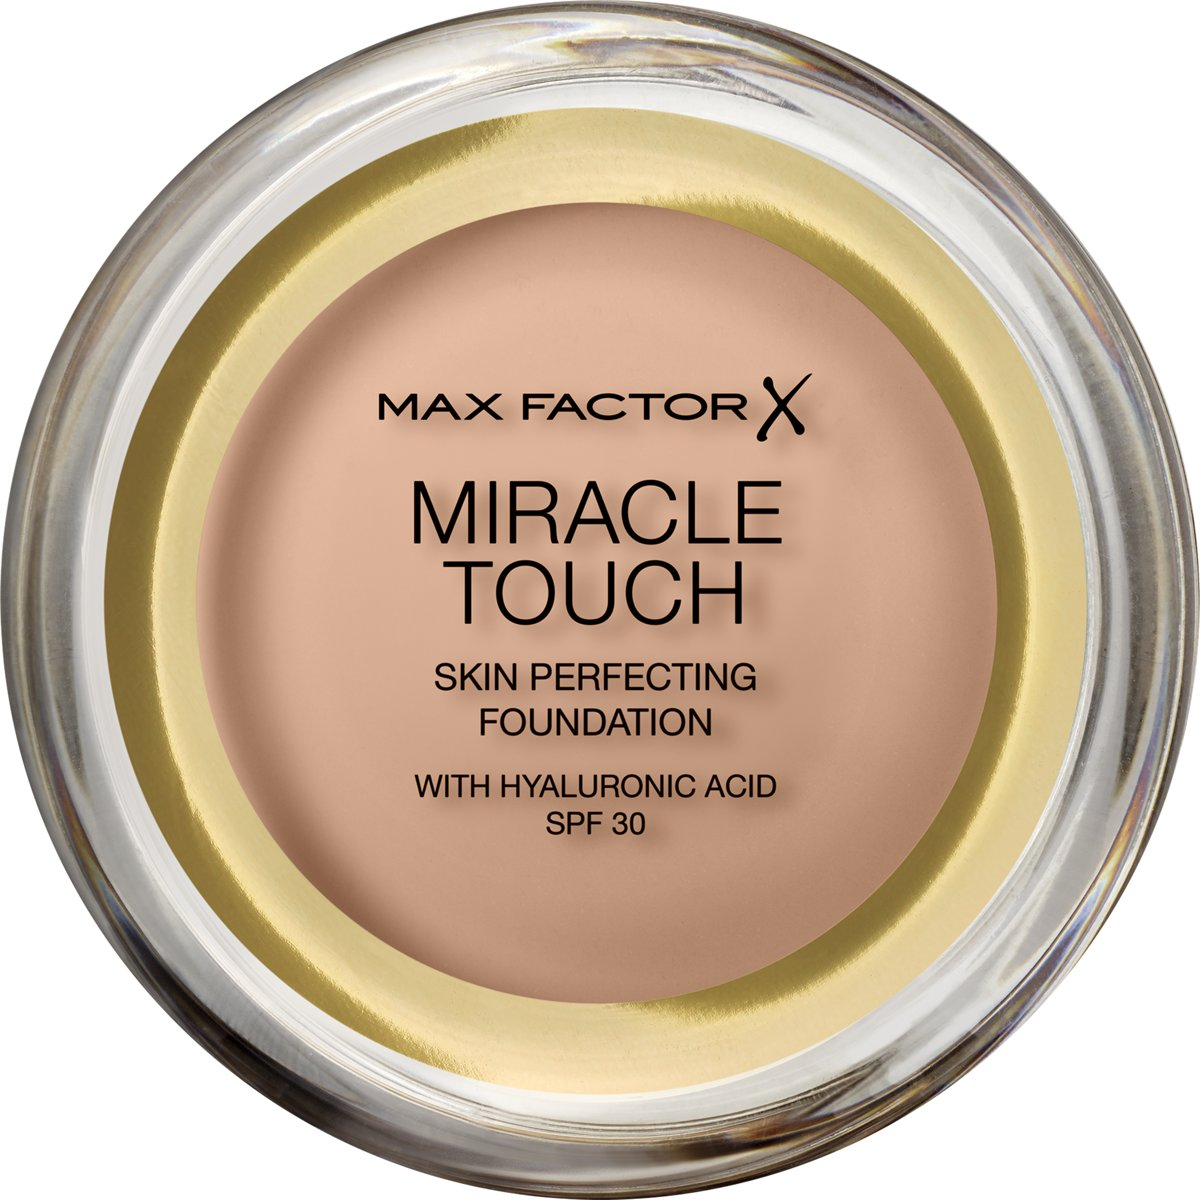 Max Factor Miracle Touch Compact Foundation - 045 Warm Almond